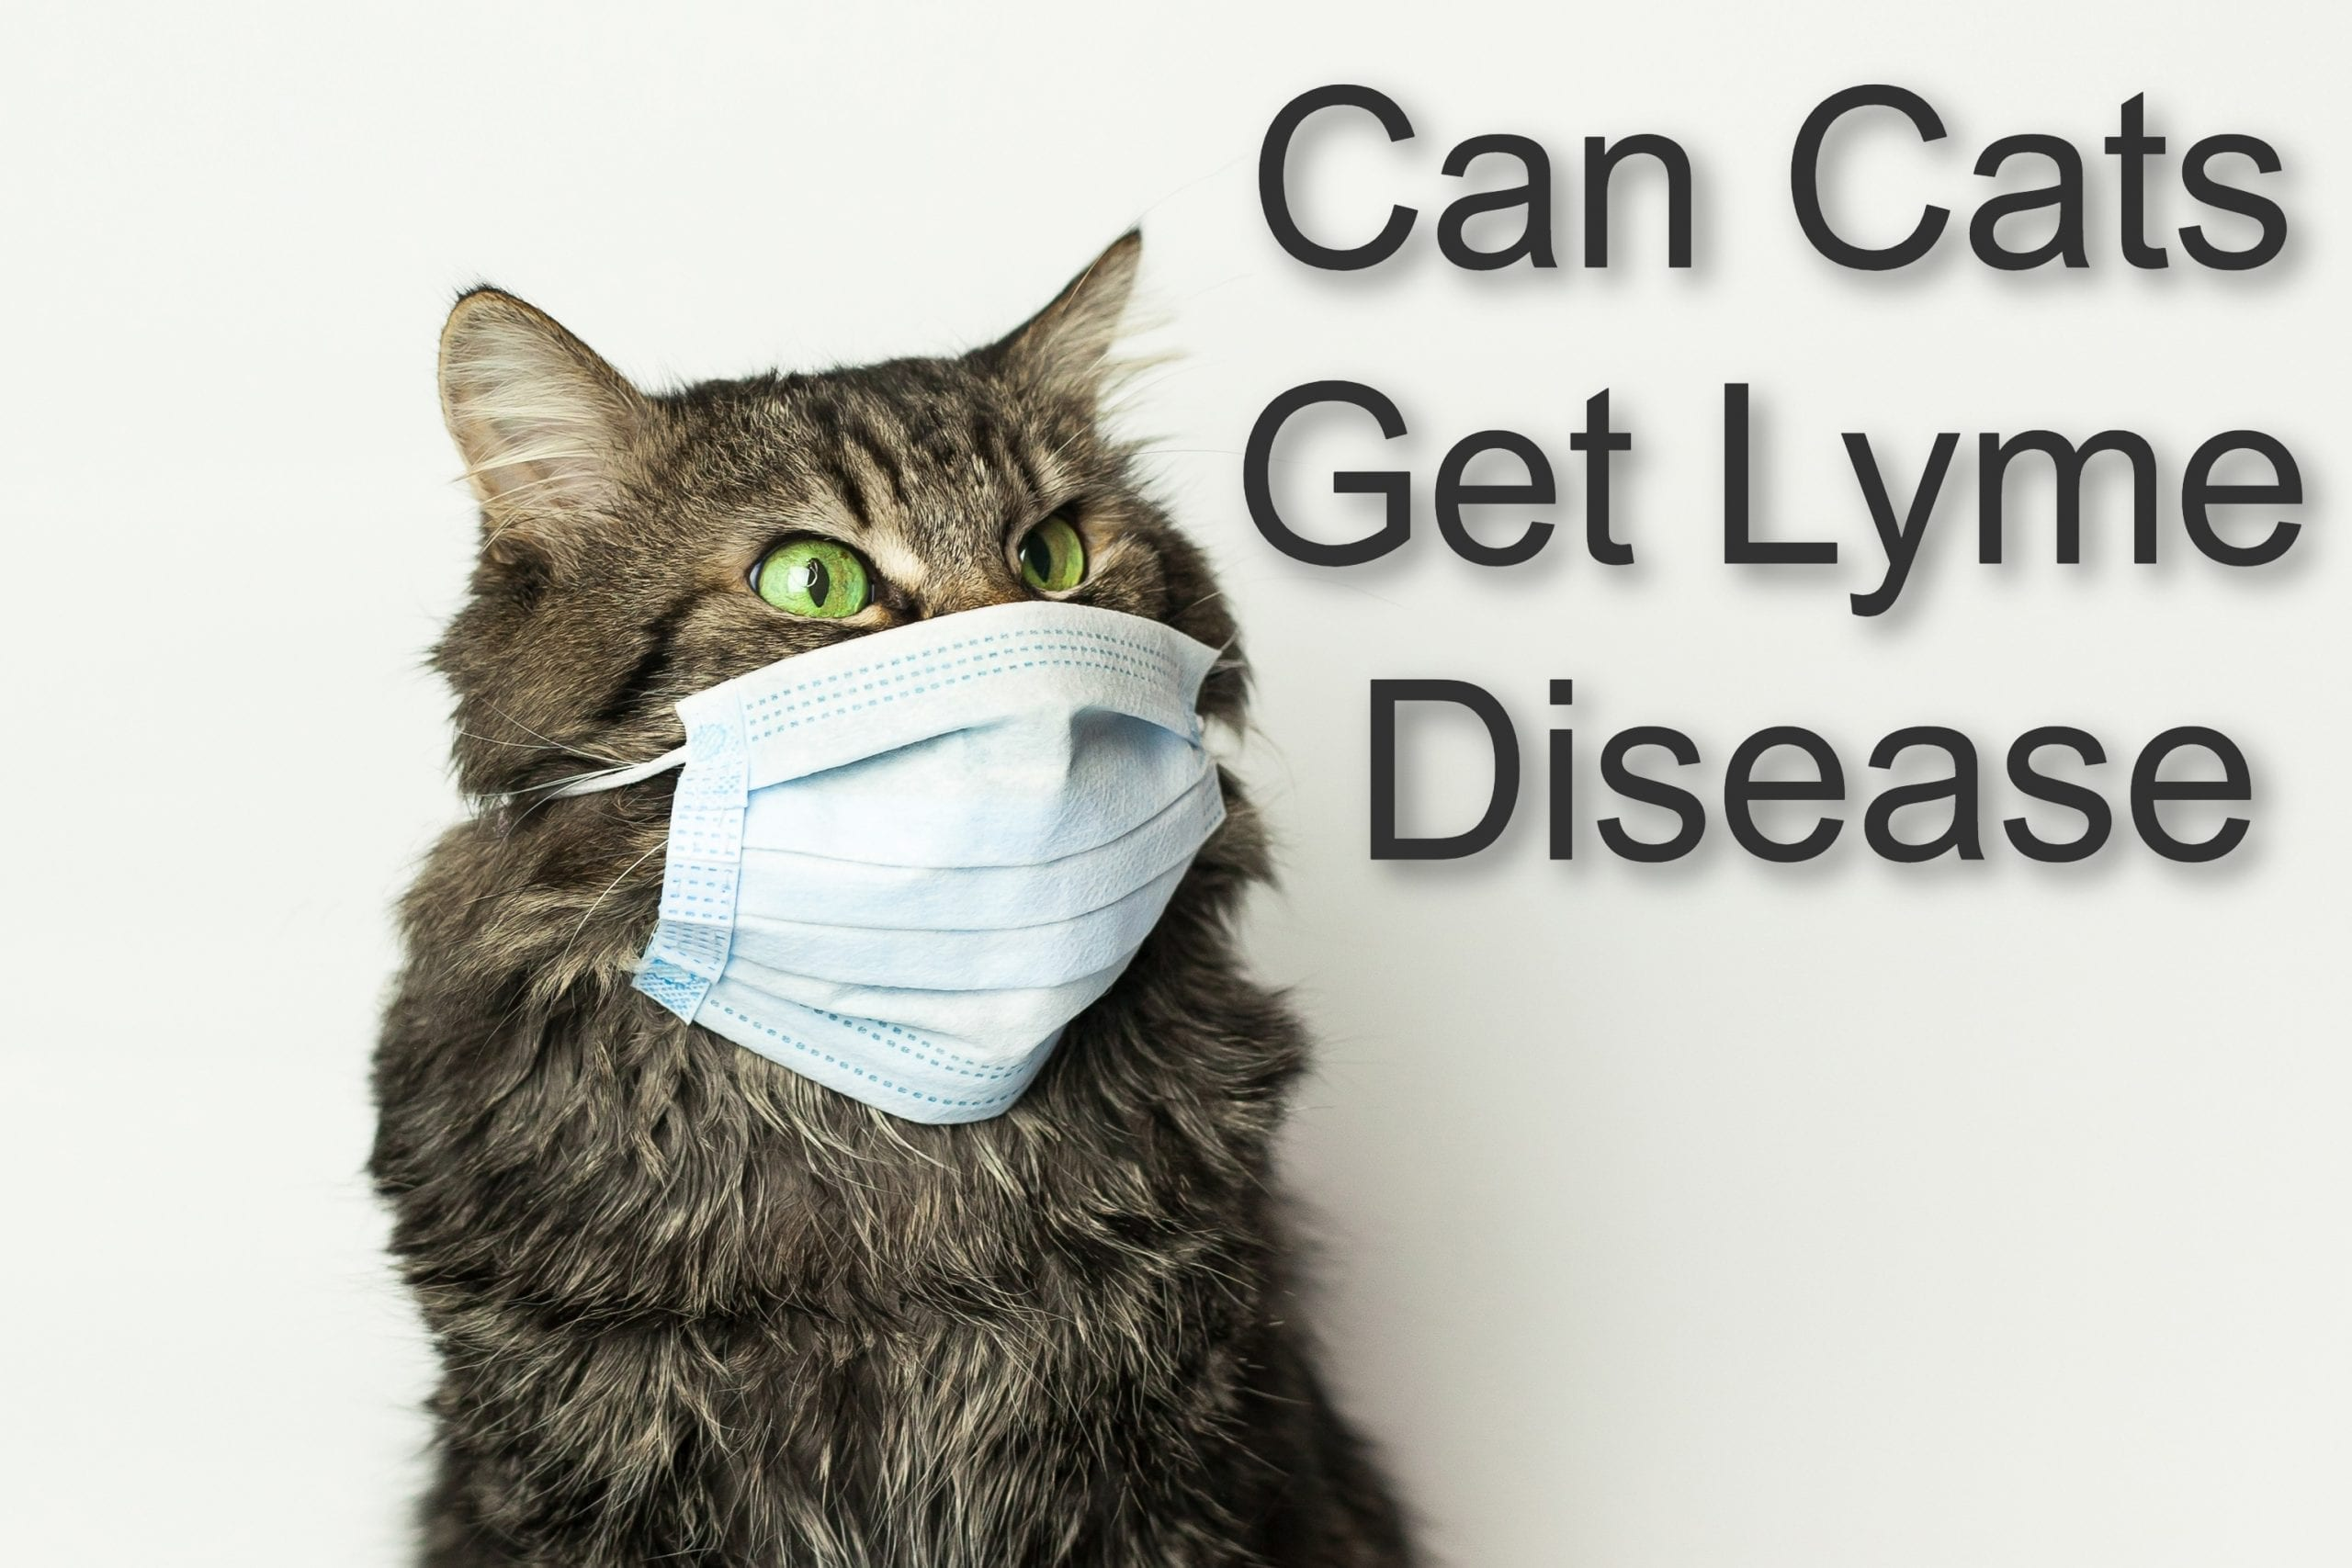 Can Cats Get Lyme Disease